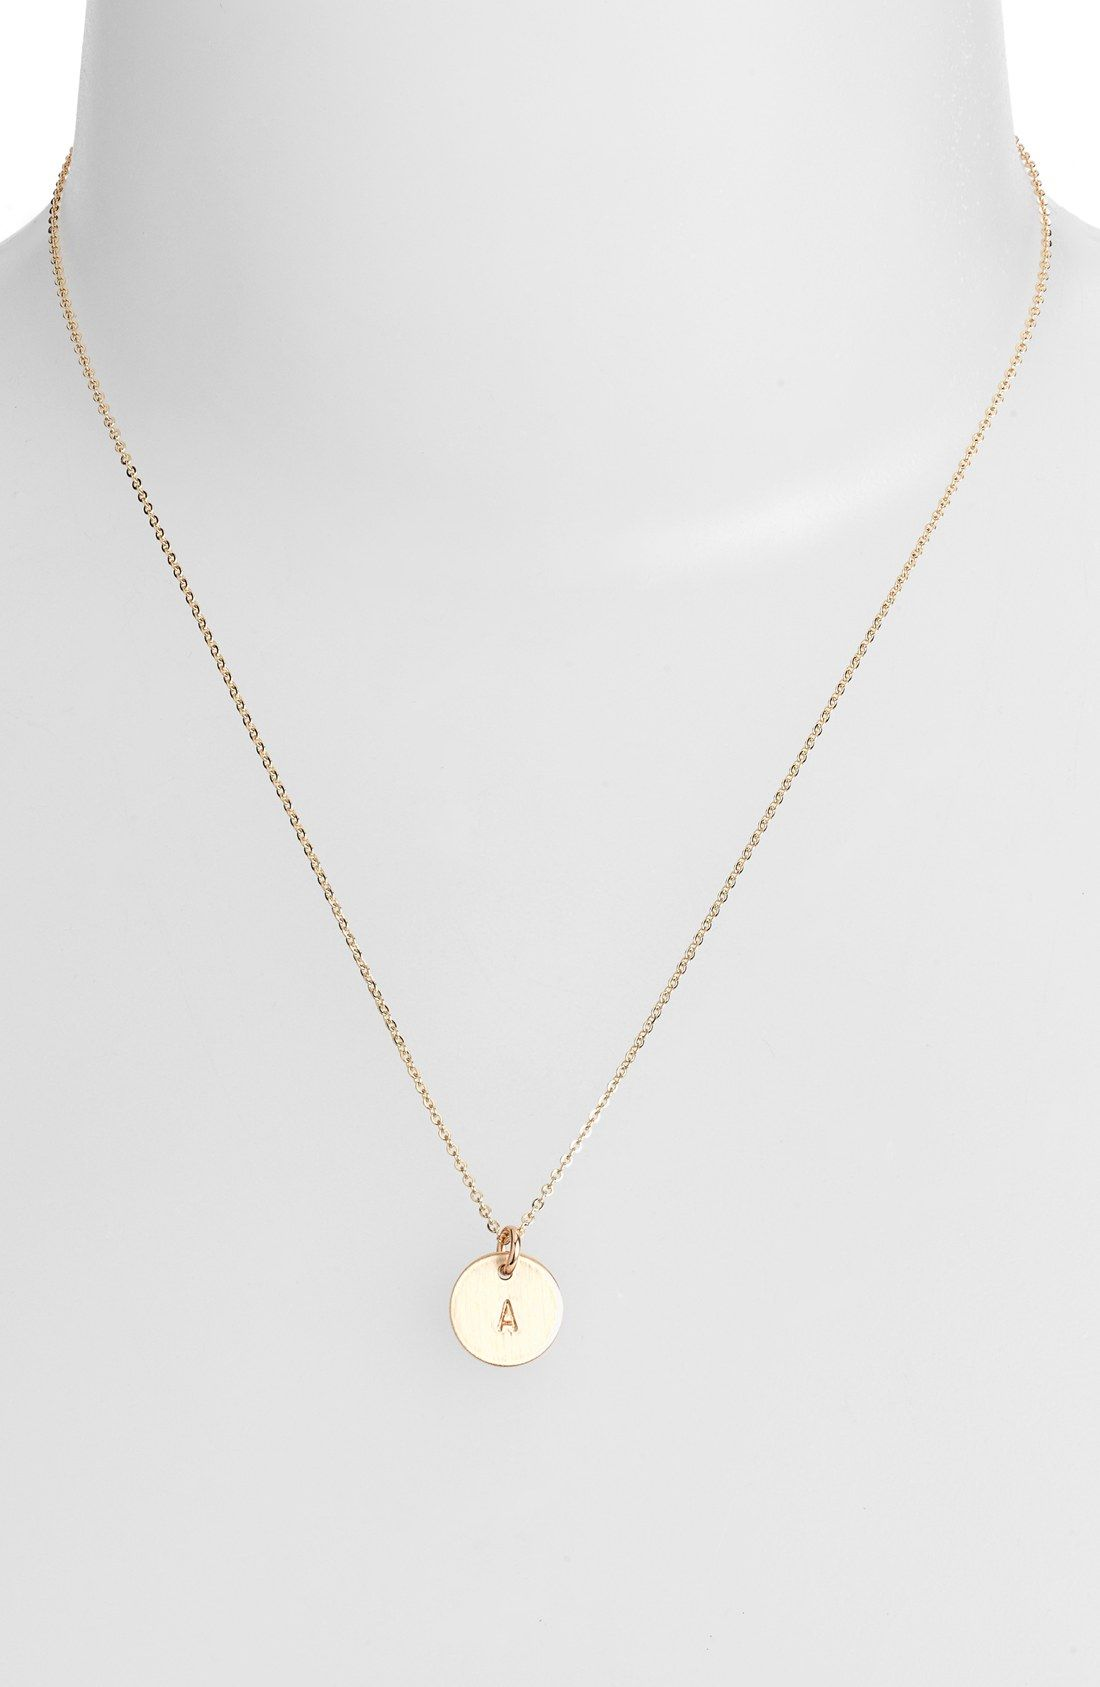 cafed99da Nashelle 14k-Gold Fill Initial Mini Circle Necklace   All I want for ...